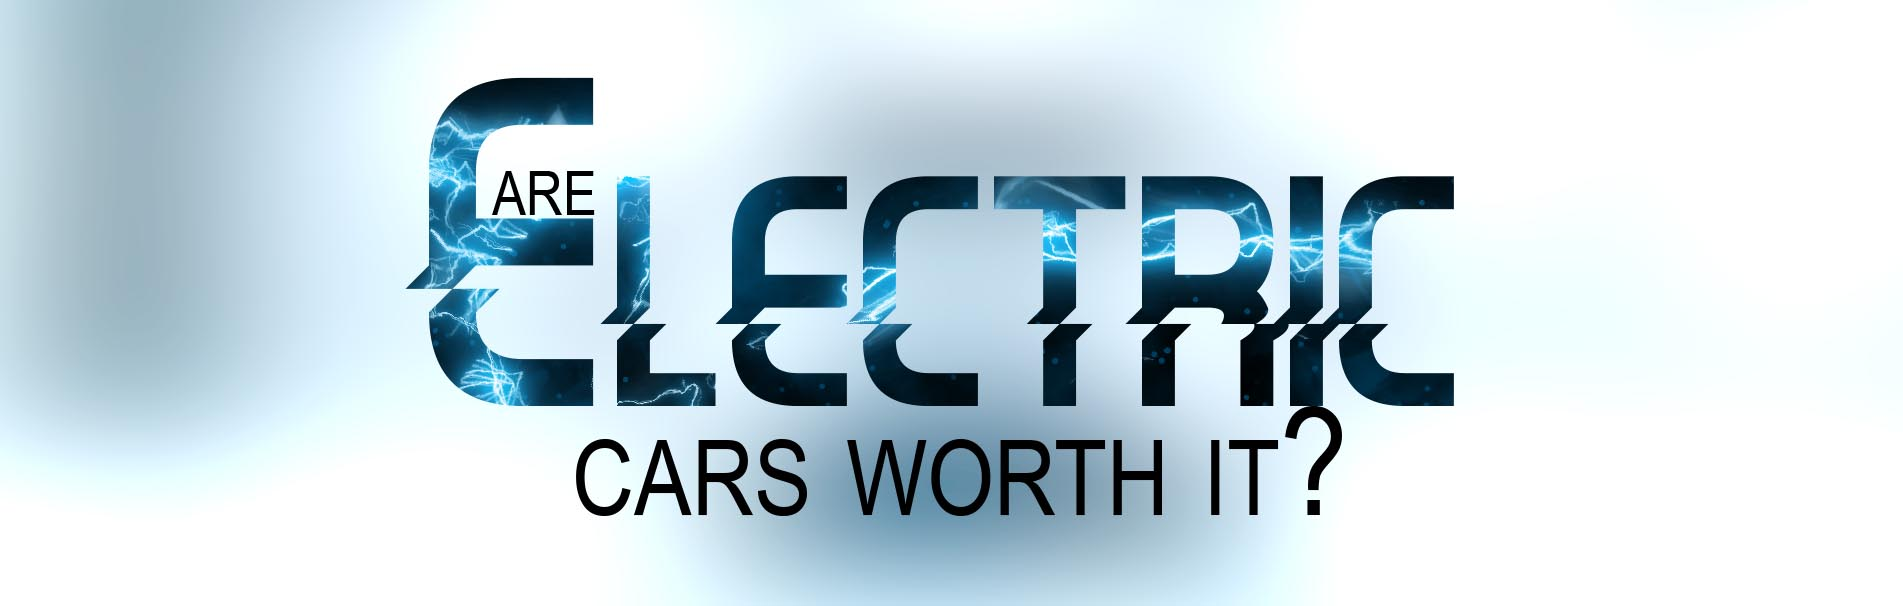 are-electric-cars-worth-it-sli